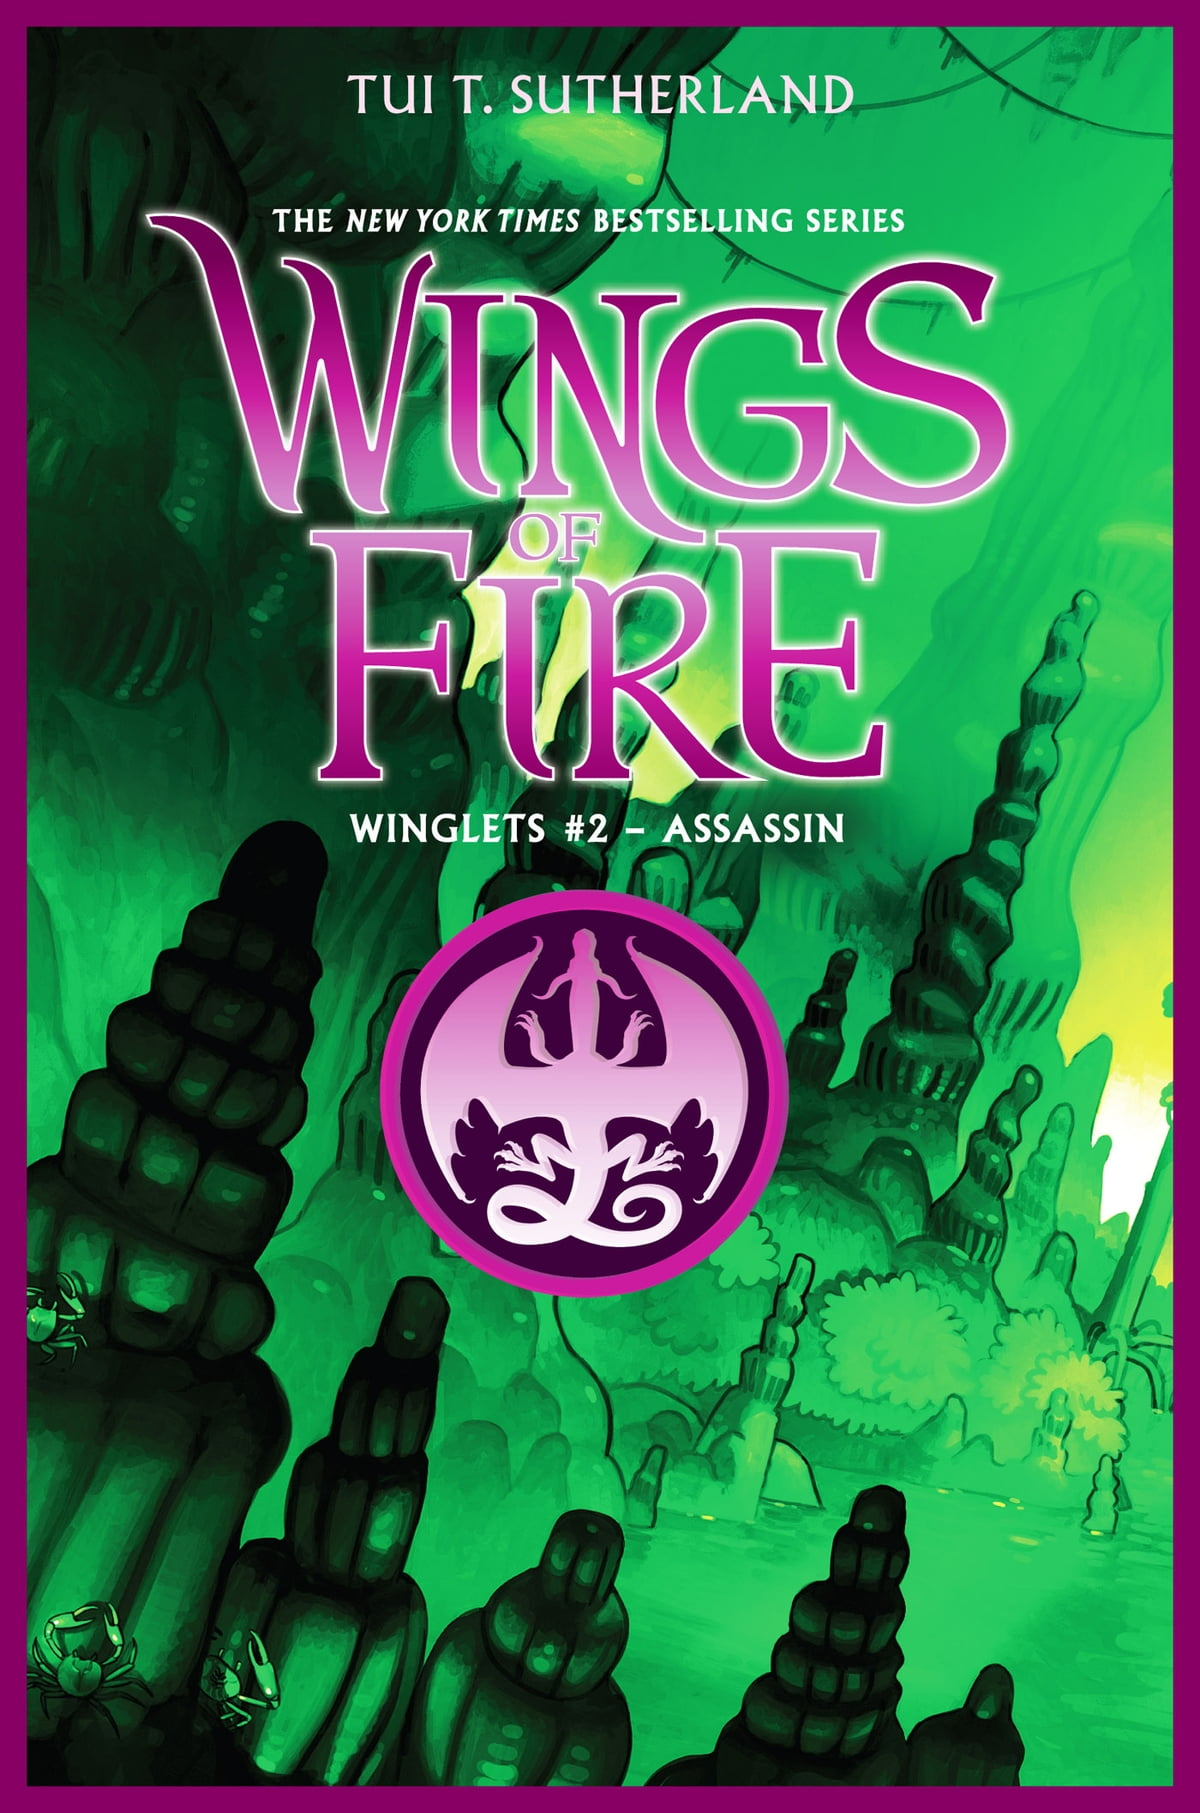 Warriors dawn of the clans 2 thunder rising ebook by erin assassin wings of fire winglets 2 ebook by tui t sutherland fandeluxe Document